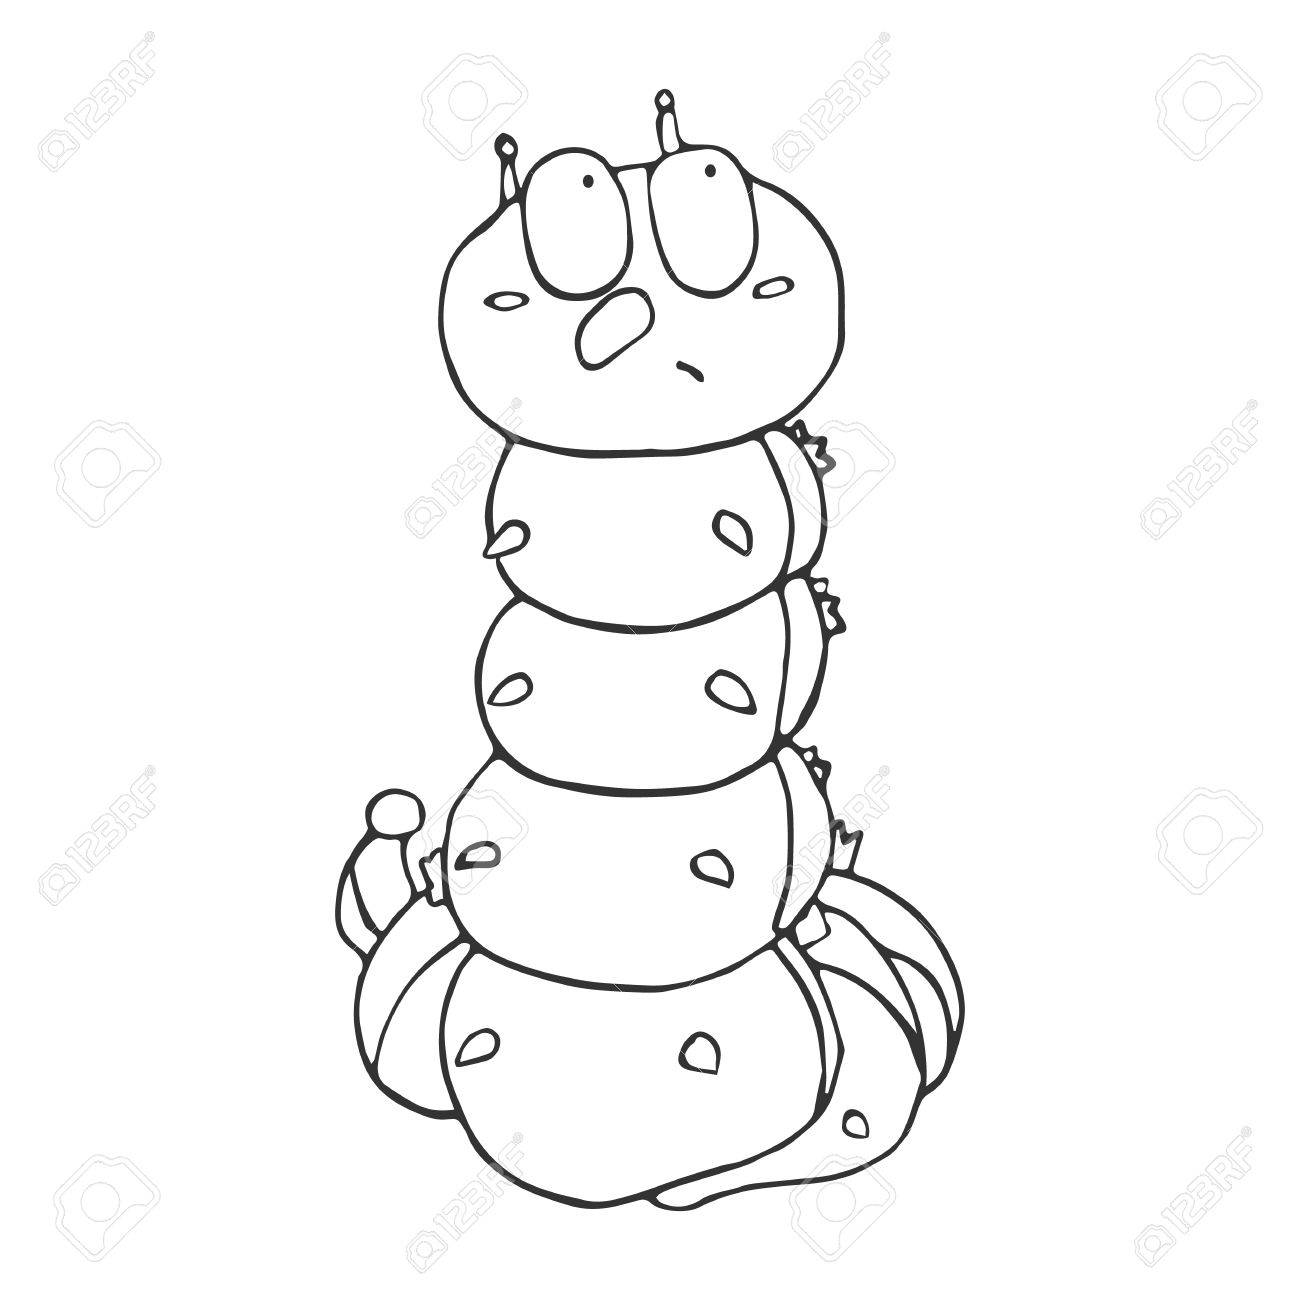 c308fa8eb02 The outline of the caterpillar in cartoon style. A sketch of..